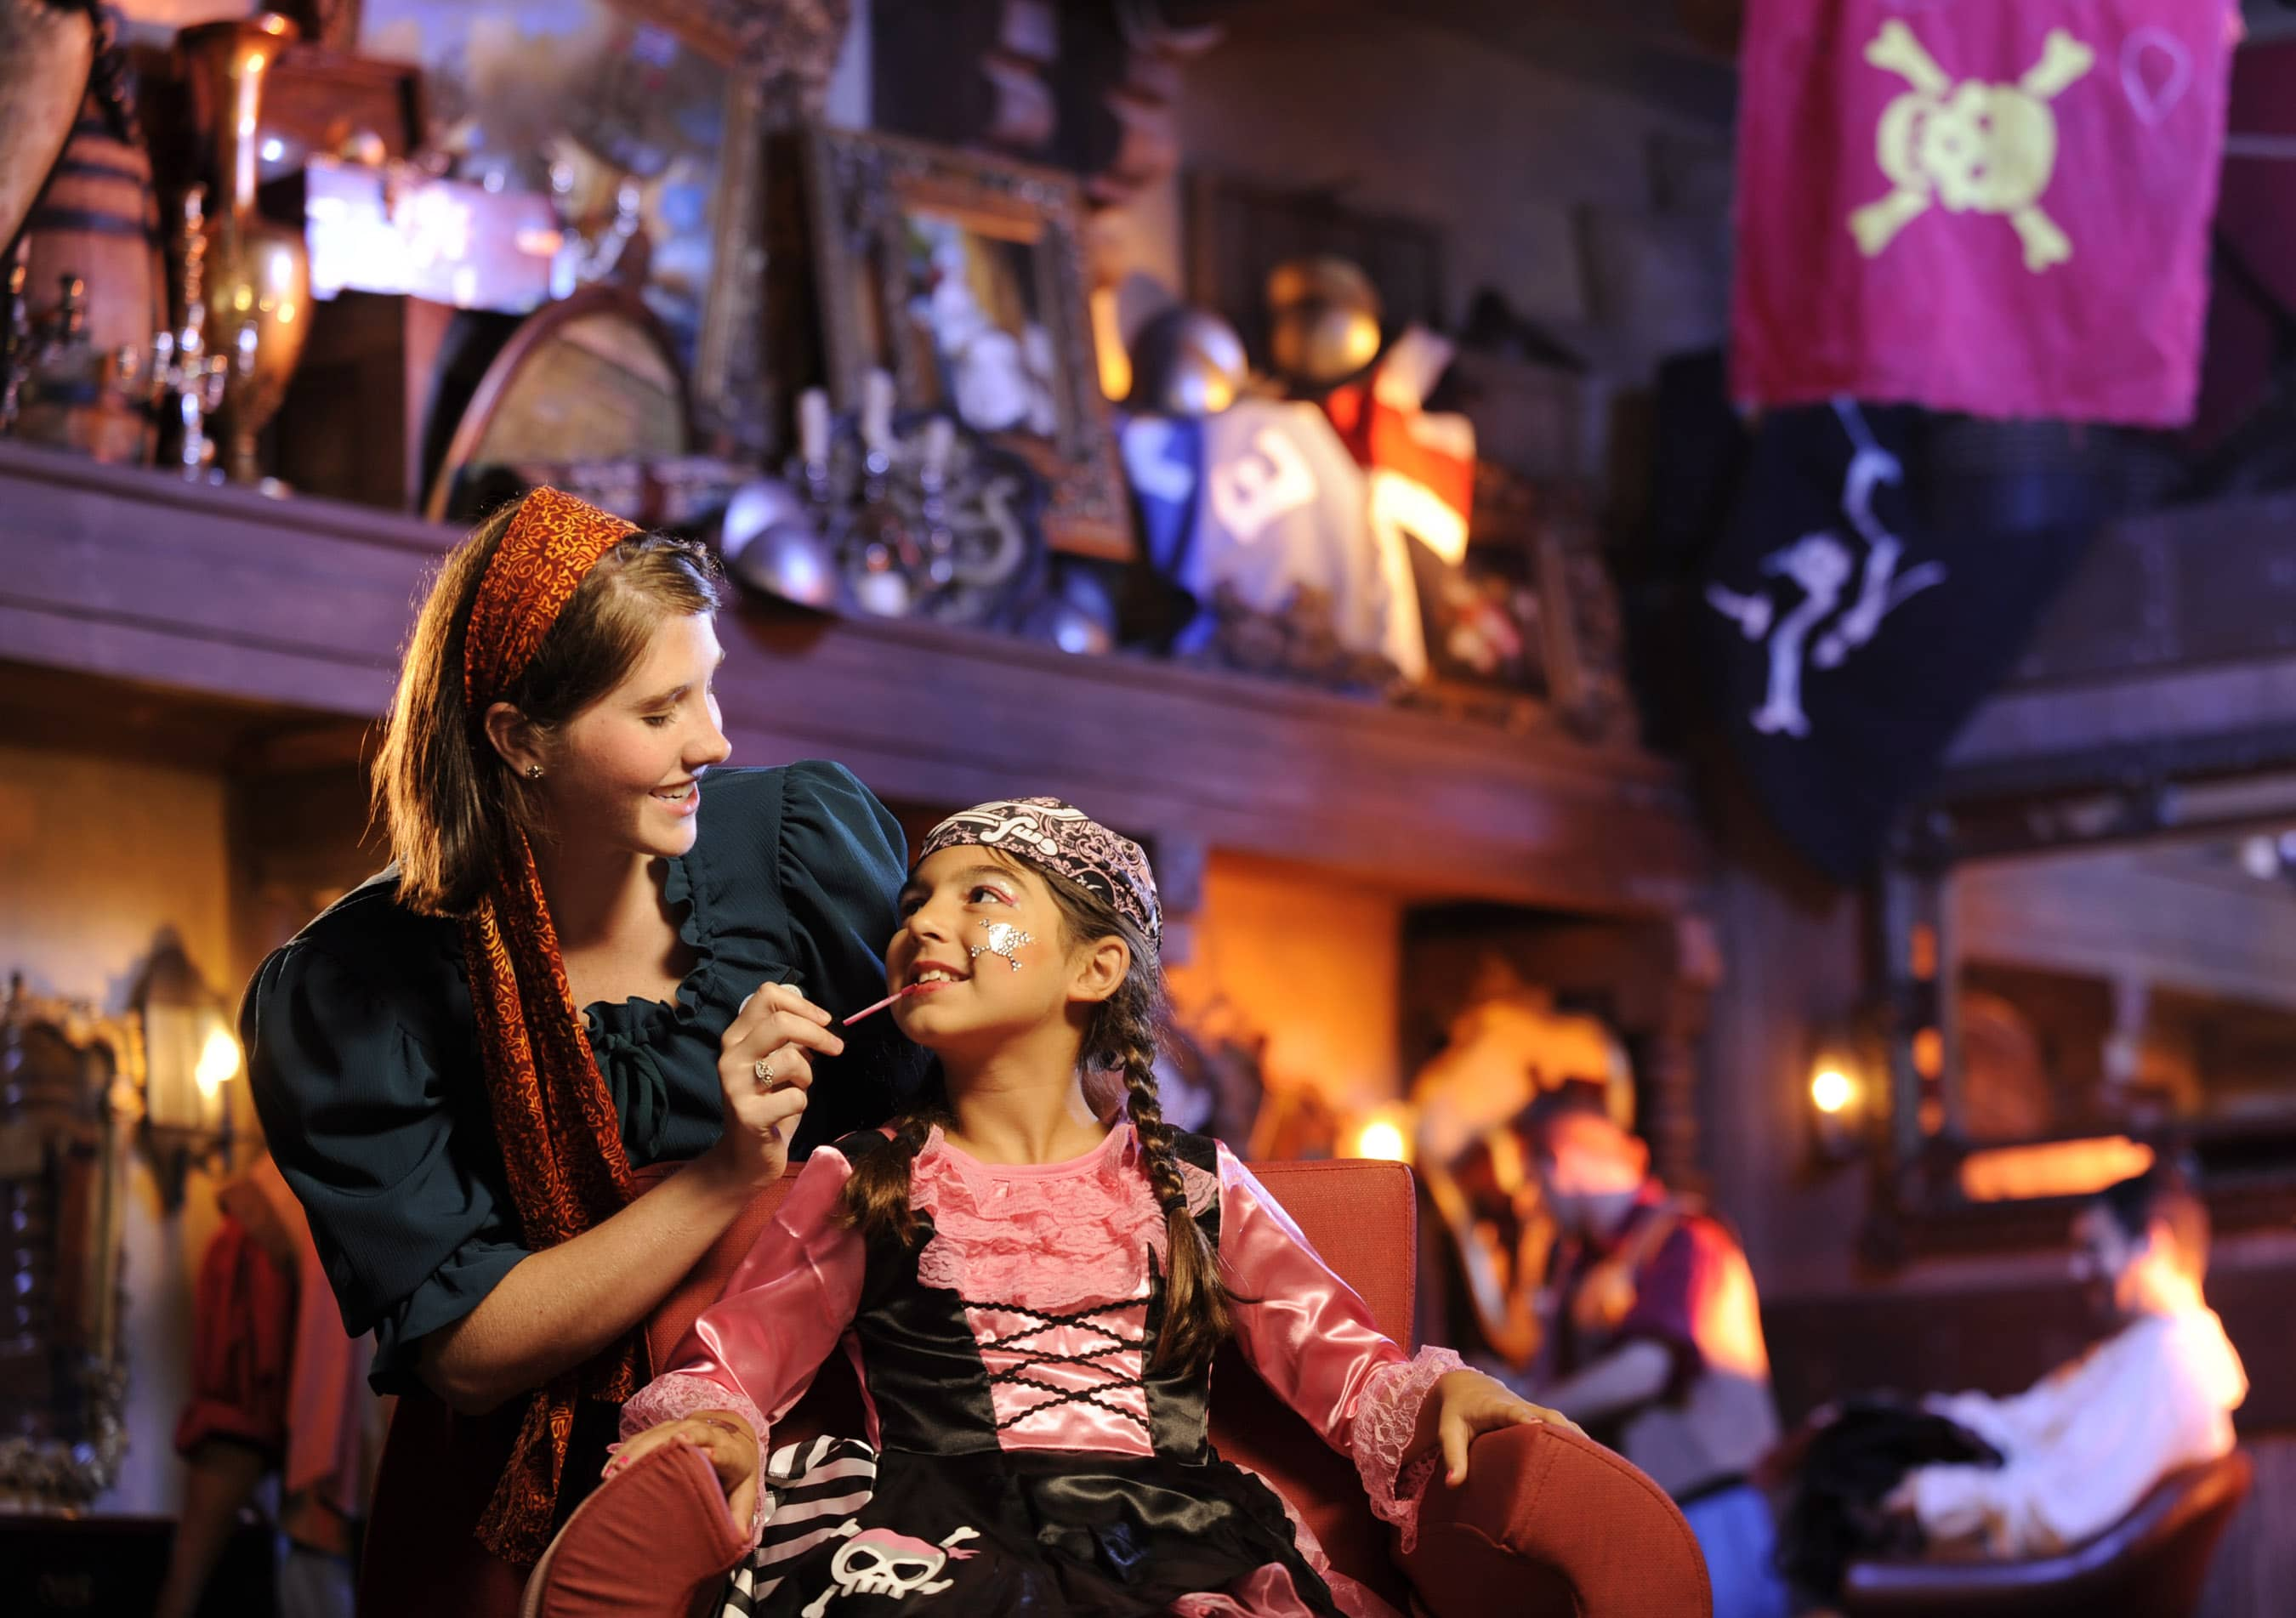 Get a pirate makeover at Magic Kingdom to celebrate a birthday at Disney World